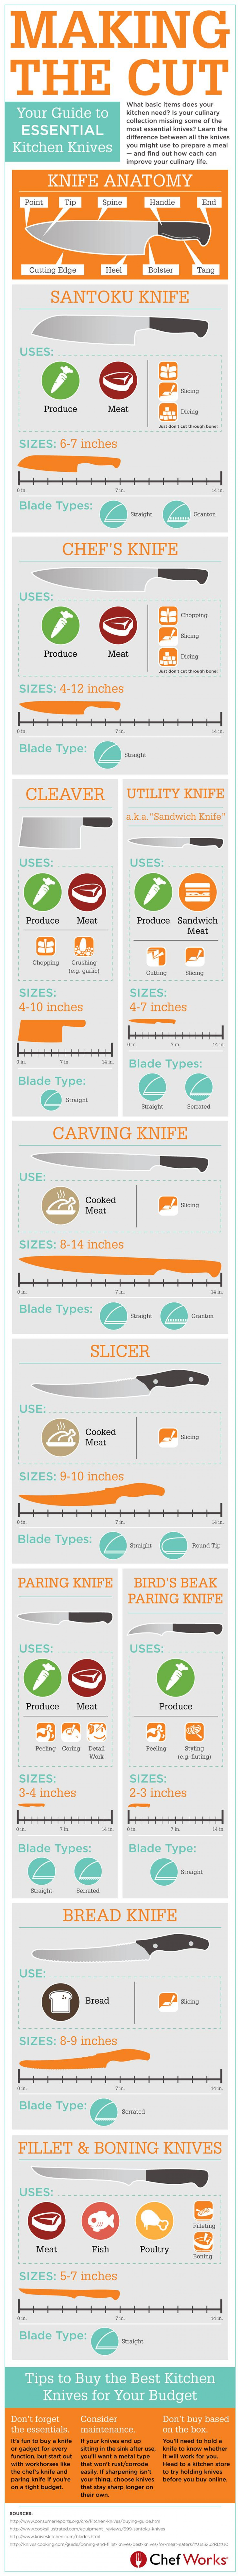 Making The Cut: Your Guide To Essential Kitchen Knives Infographic